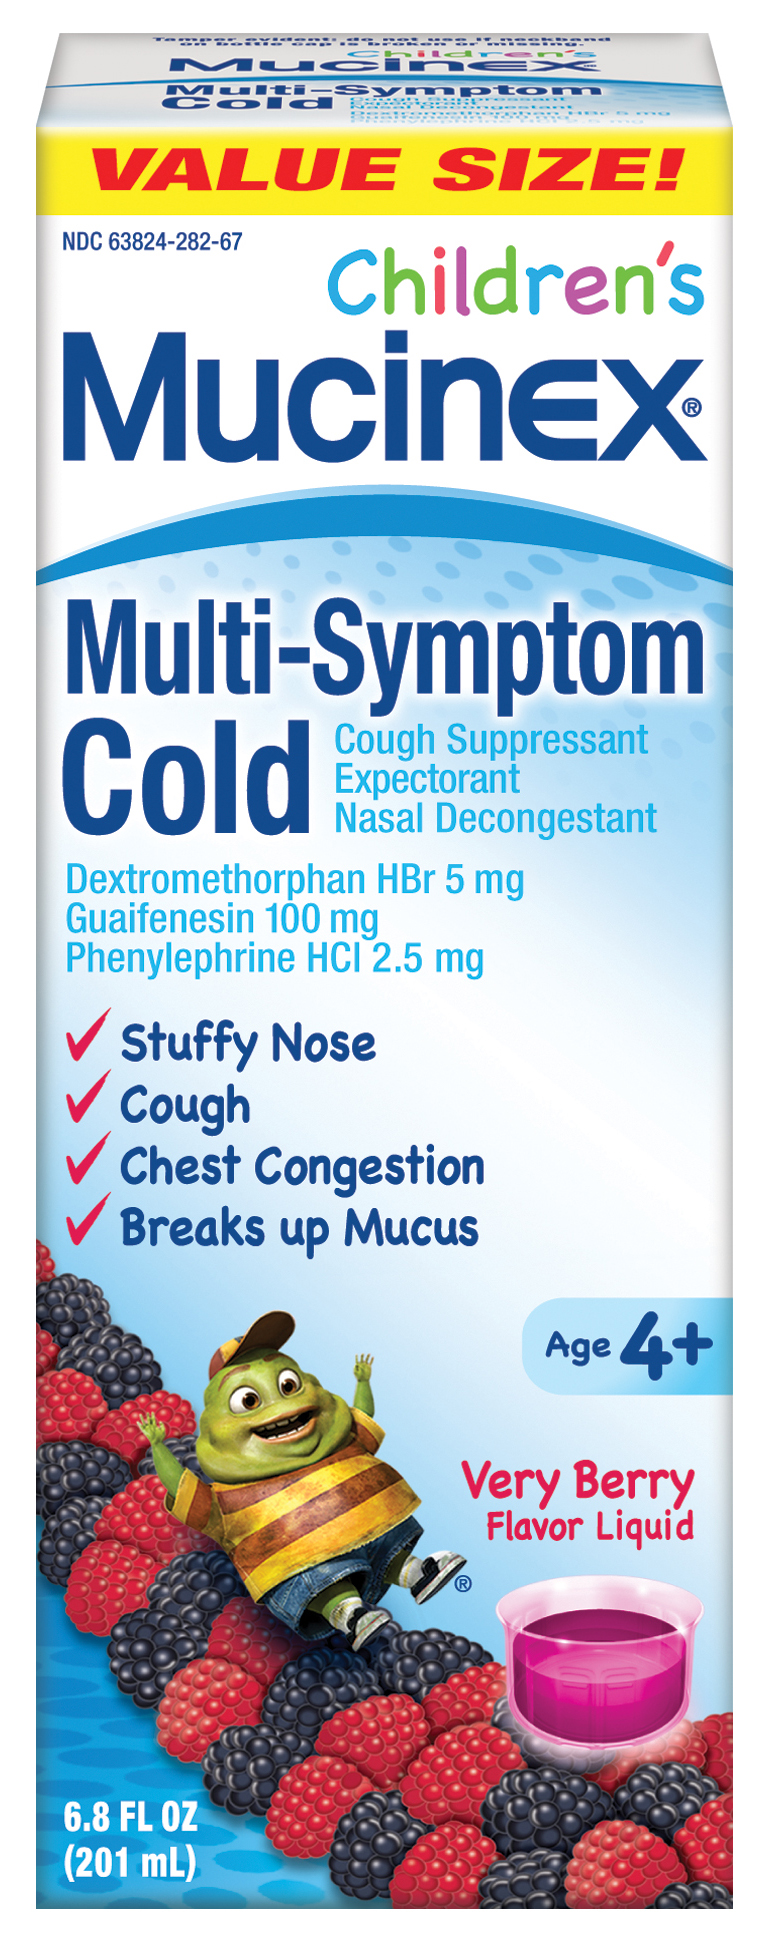 MUCINEX CHILDRENS Day Time Night Time  MultiSymptom Cold  Very Berry Day Time Photo